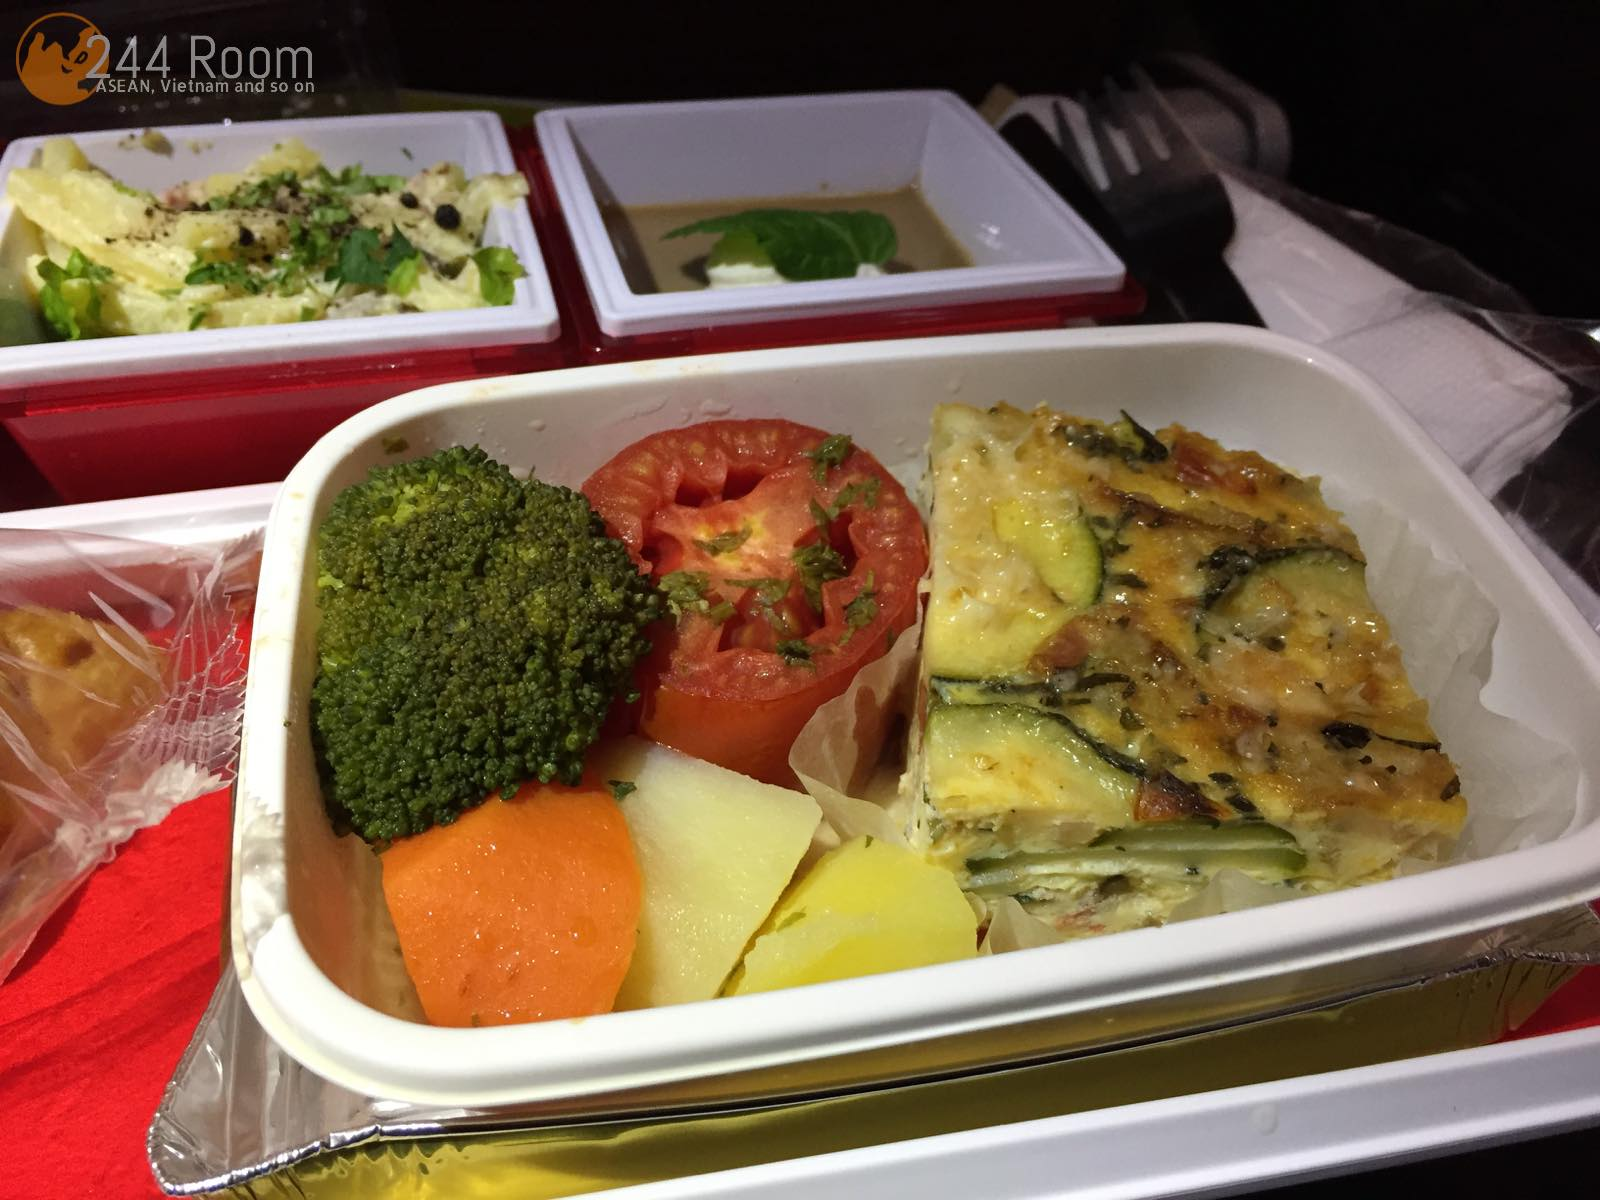 JALJL752機内食(朝食) Jal in-flight meal3